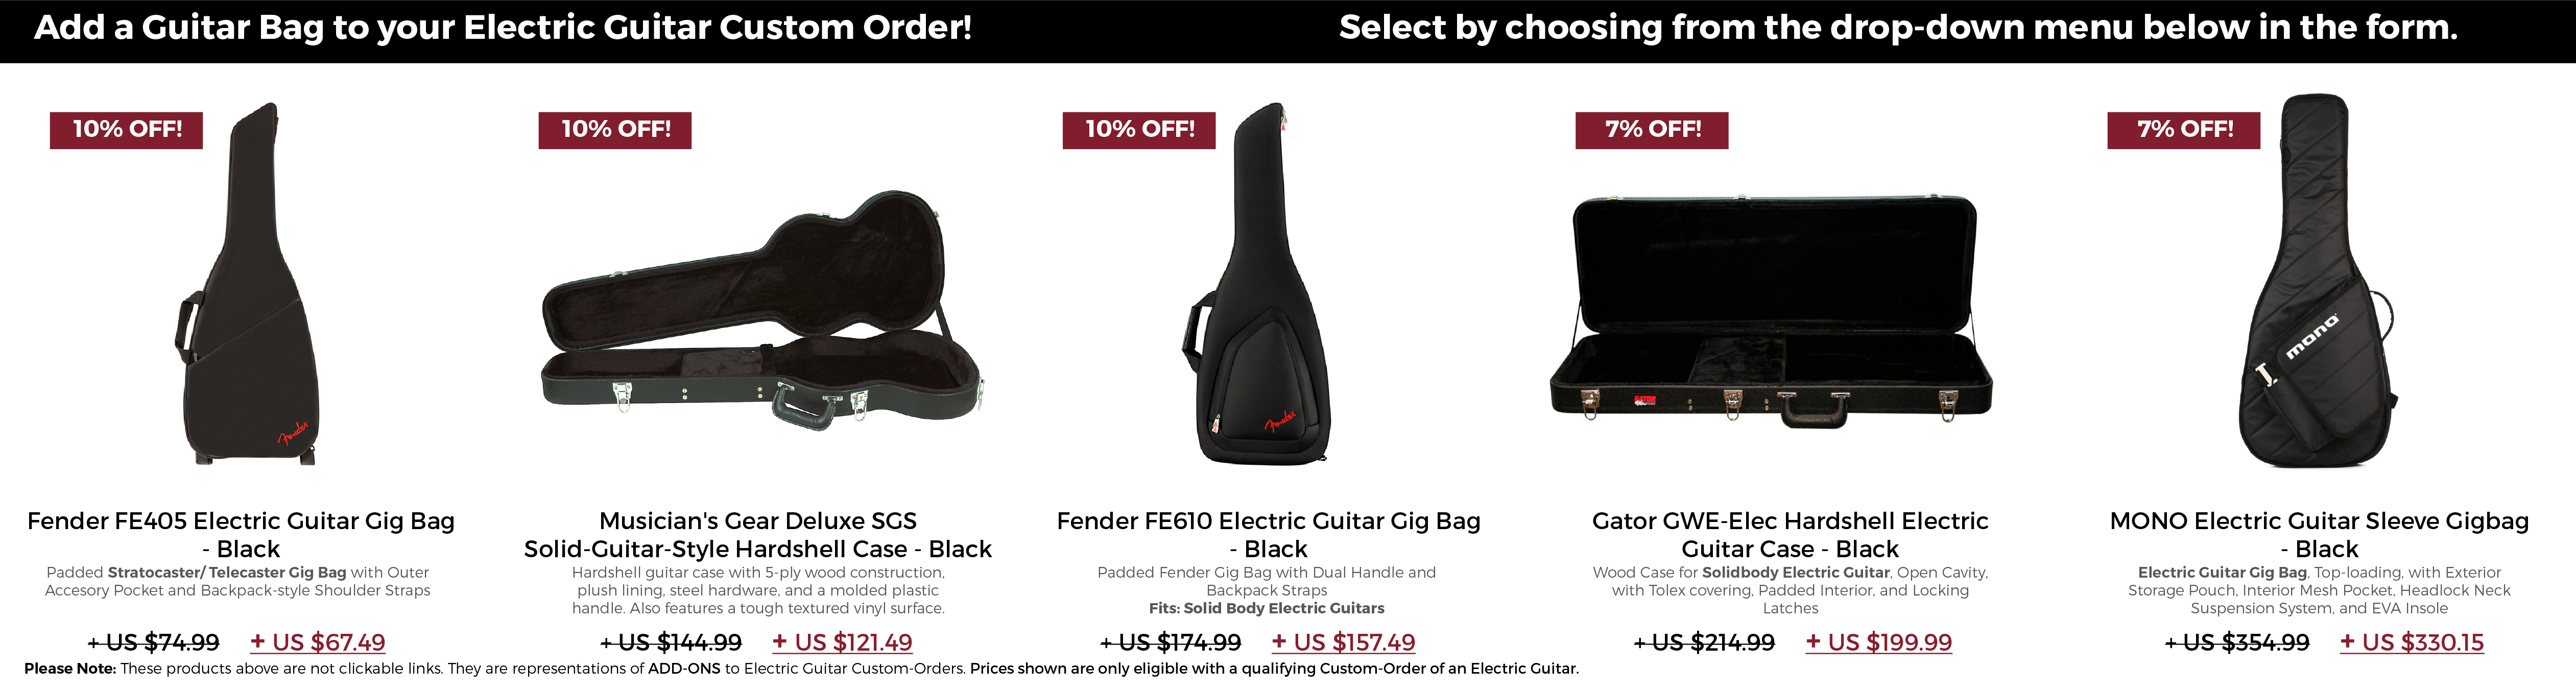 LW-A-CO-Add-Ons-Electric-Guitar-Bags.png